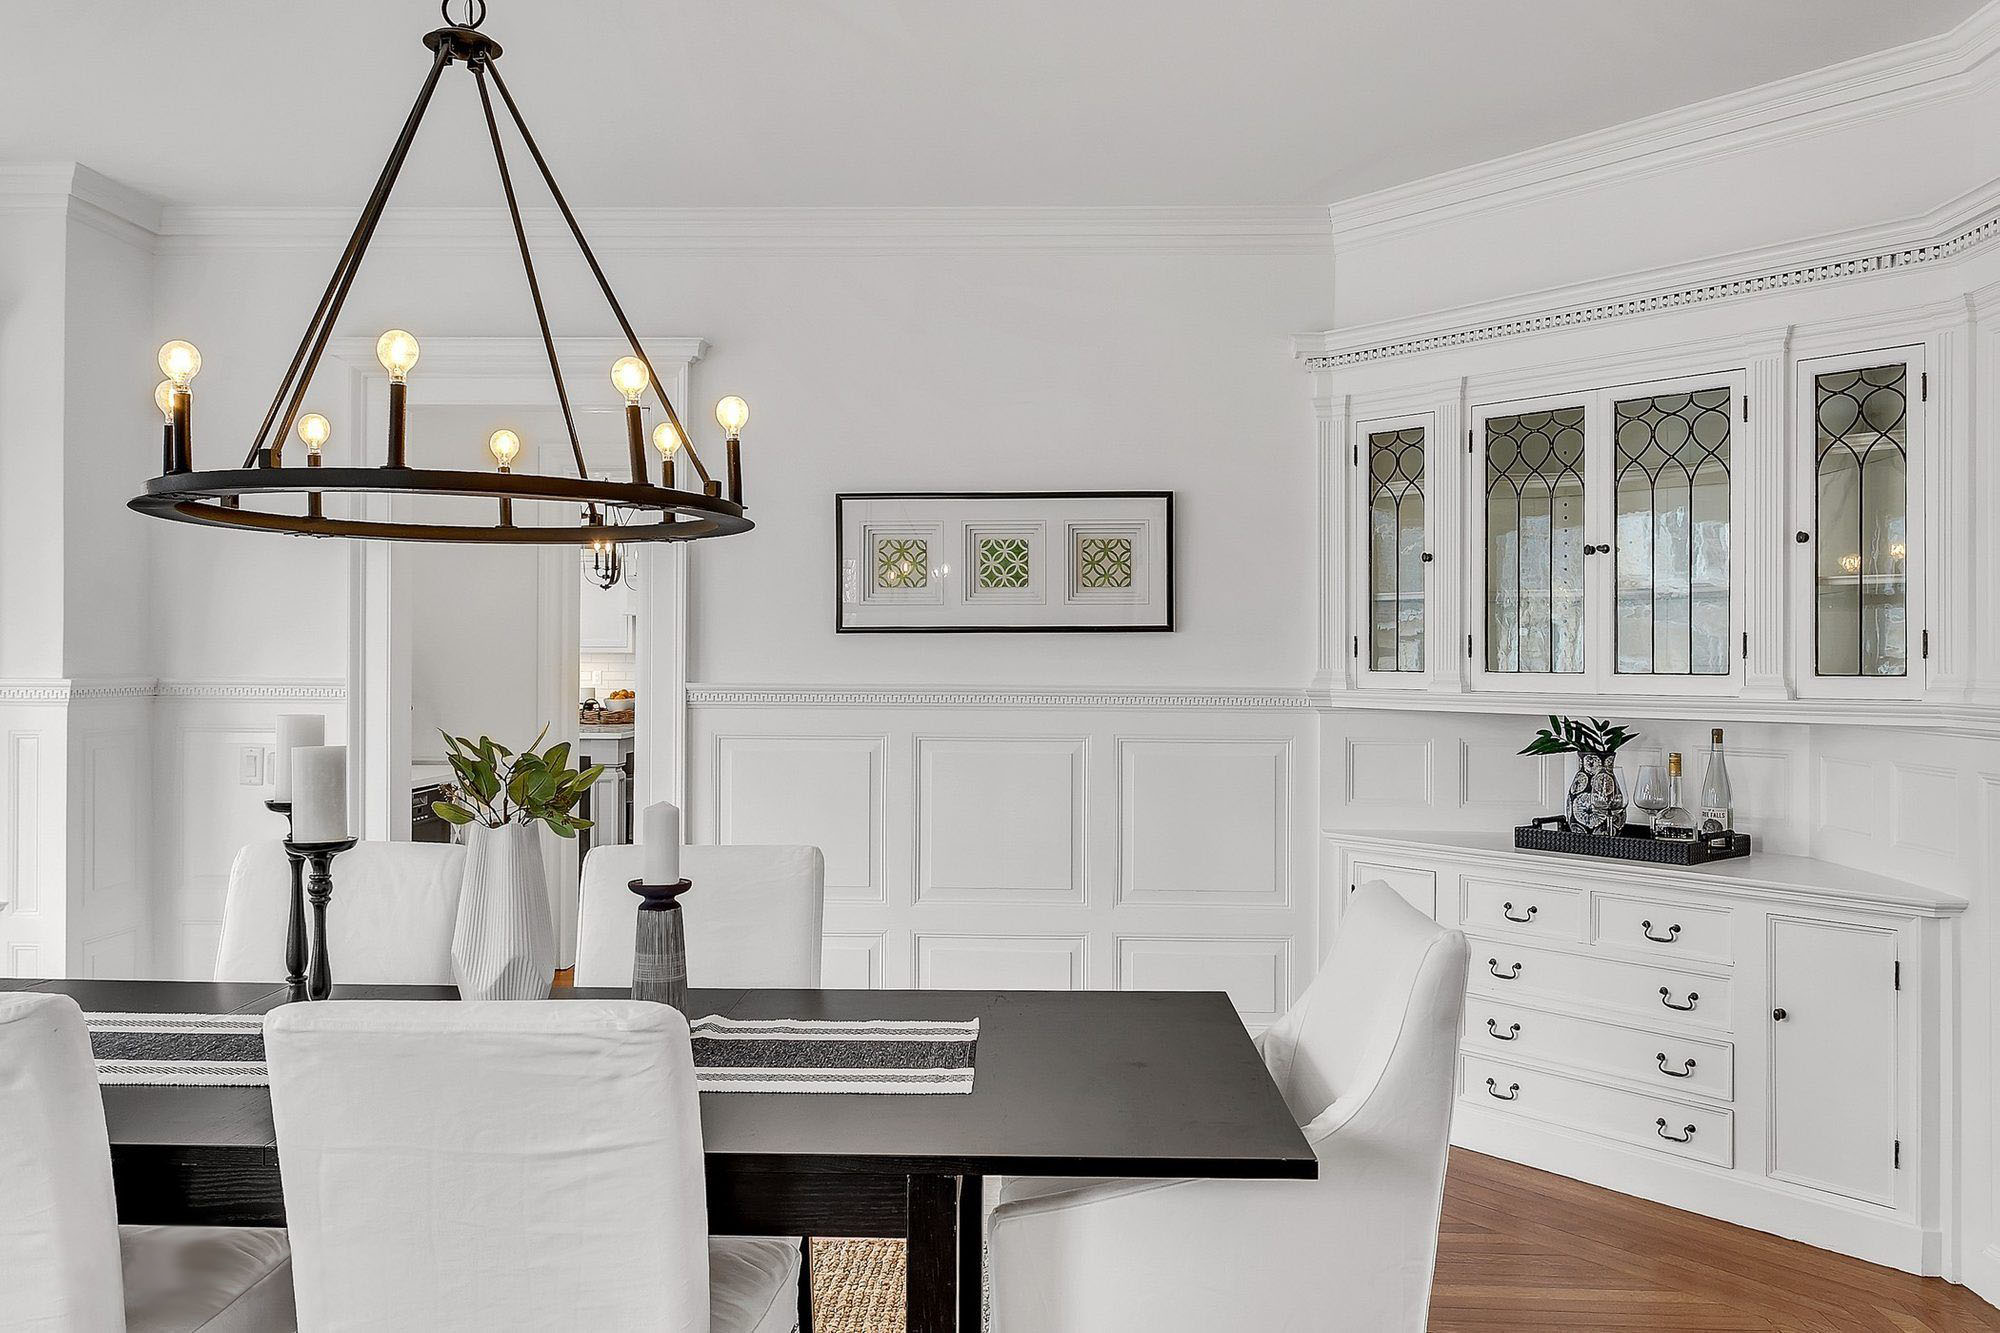 all white monochromatic dining room color scheme with black accessory colors.